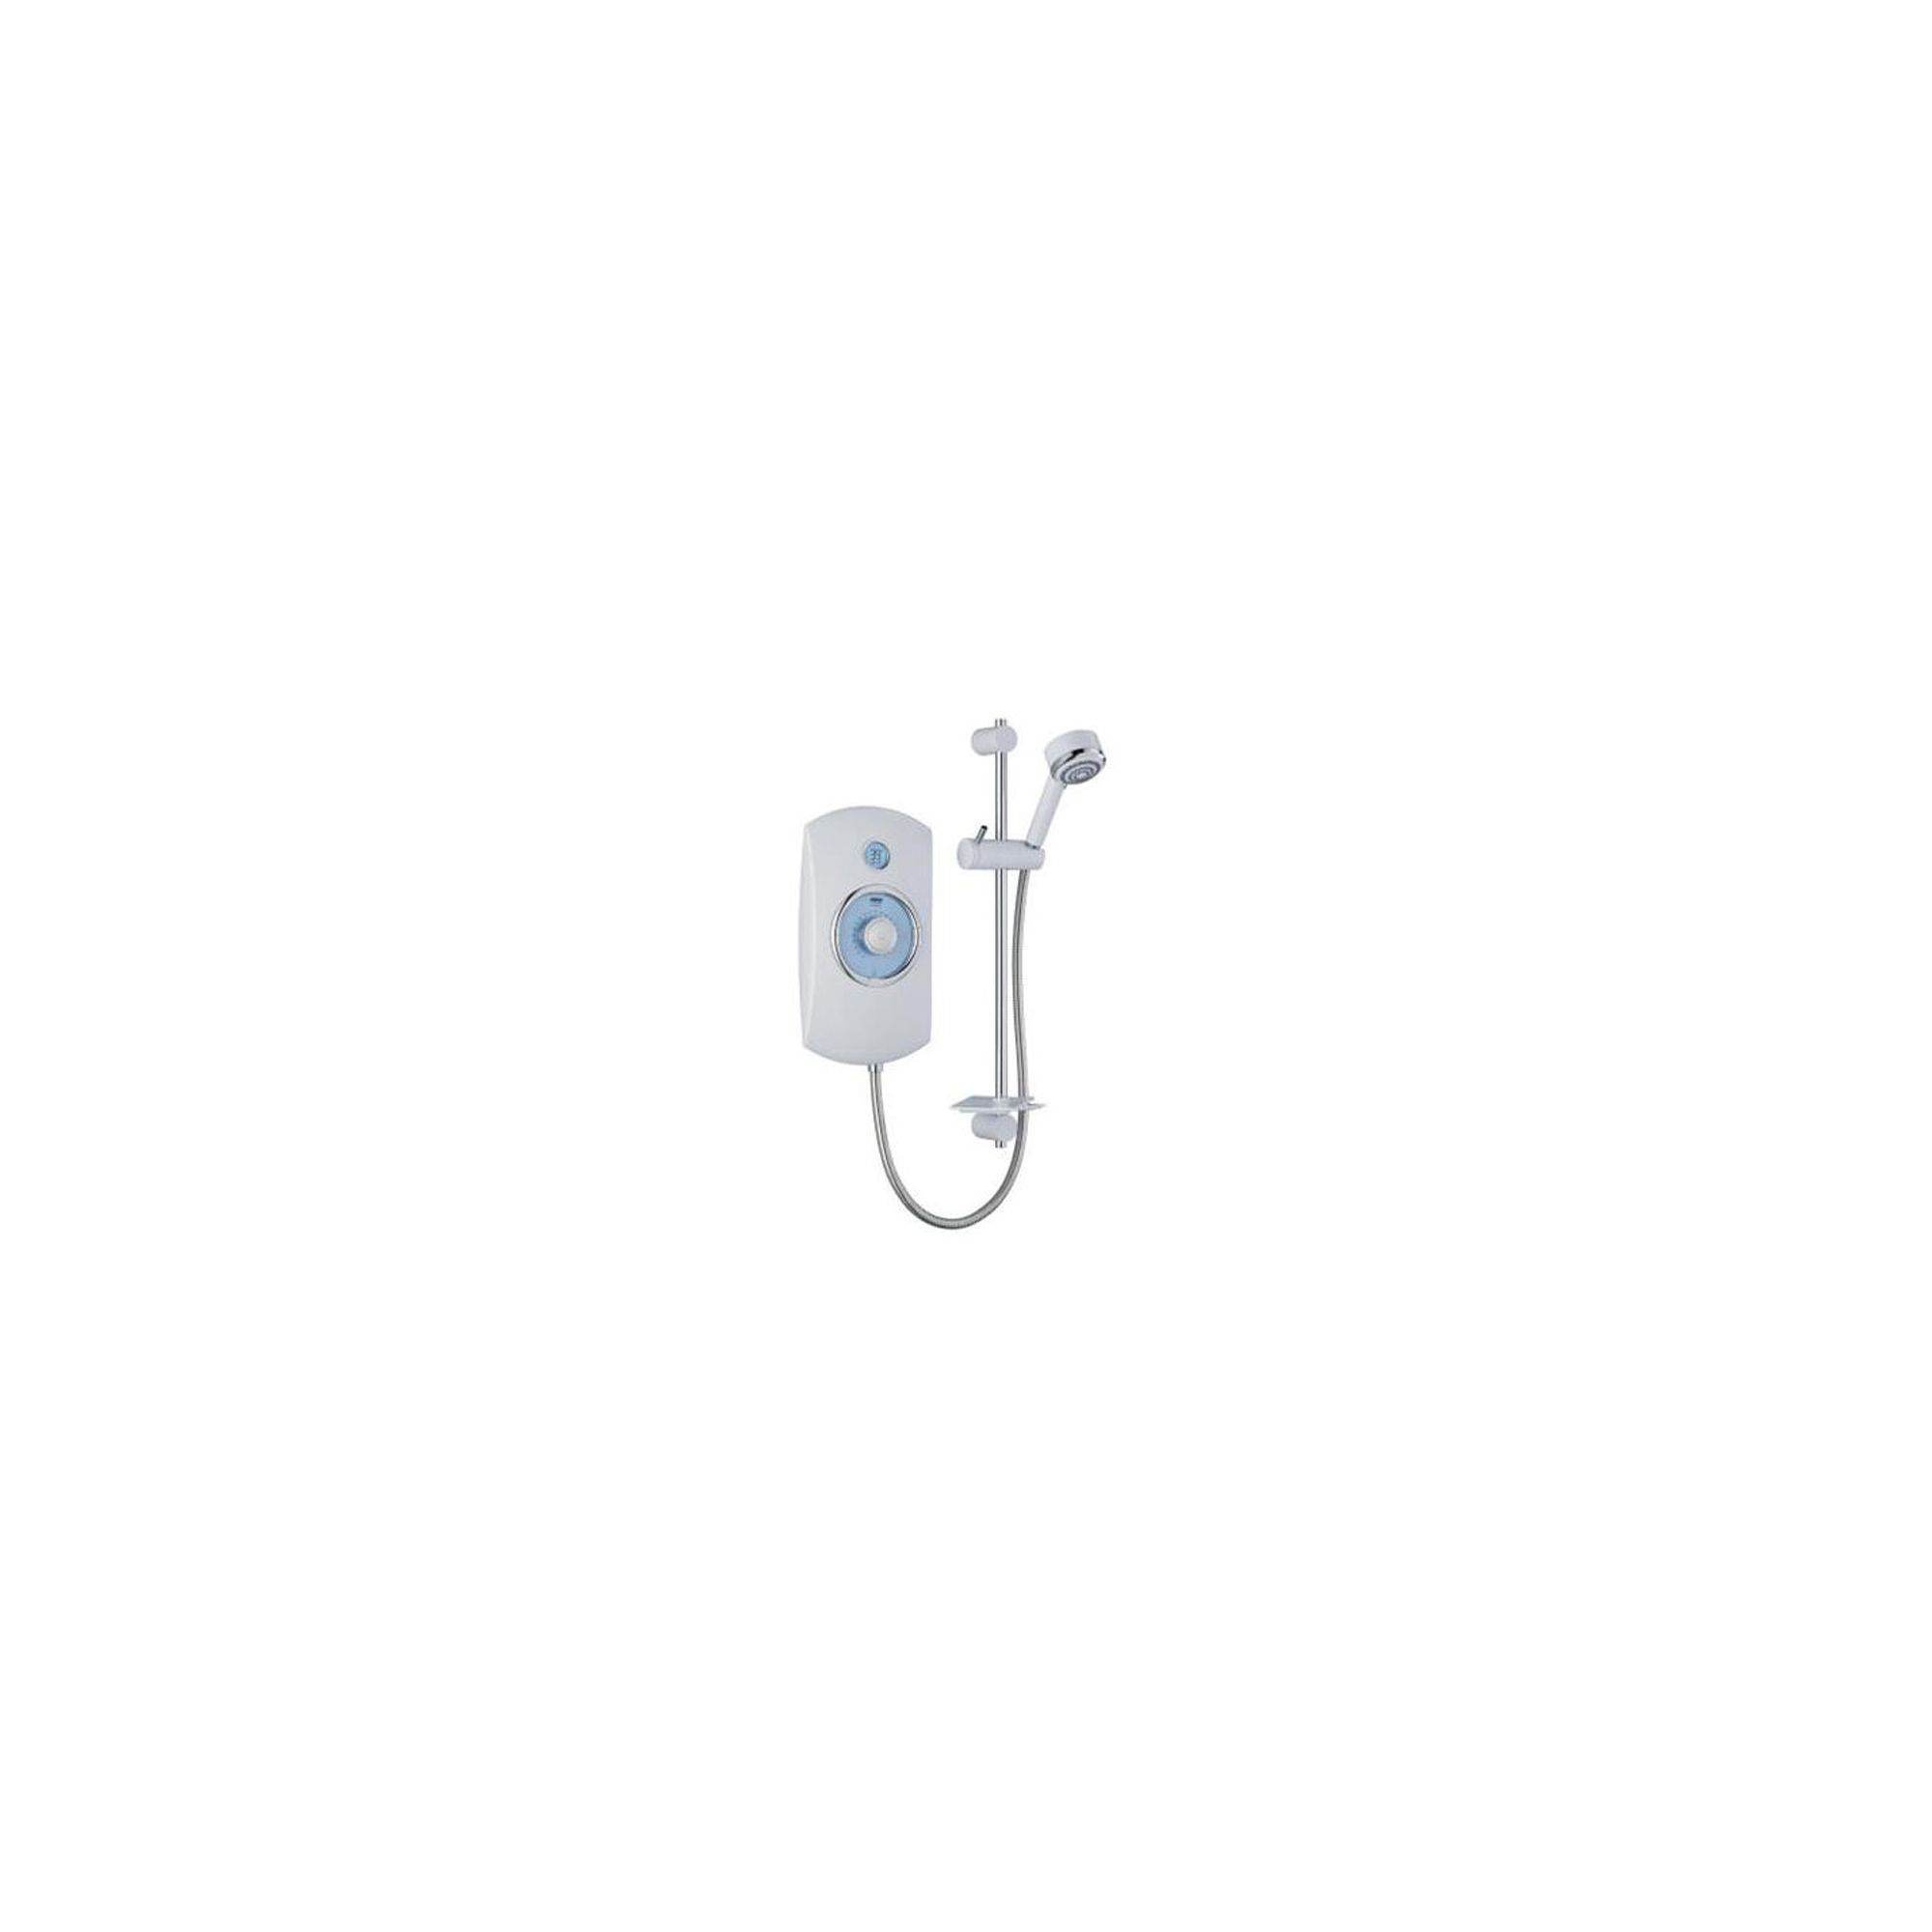 Mira Orbis 9.0 kW Electric Shower, Time and Temperature Display, White at Tesco Direct